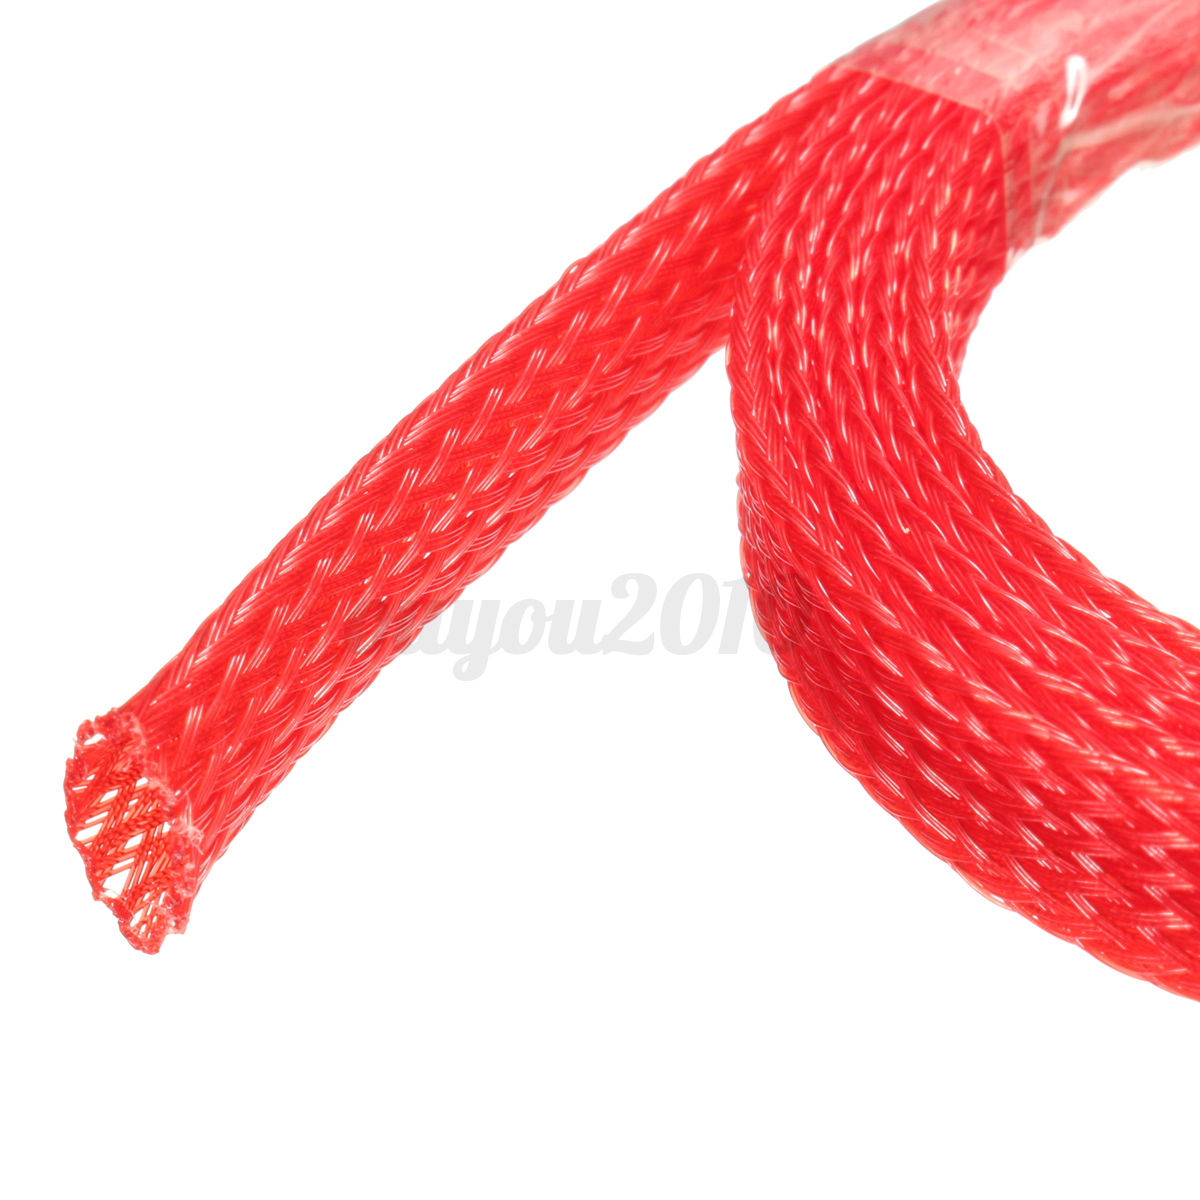 nos launcher 8 pin wire harness 1m 8mm braided wire tidy mesh pet expandable sleeving ... wire harness mesh #14